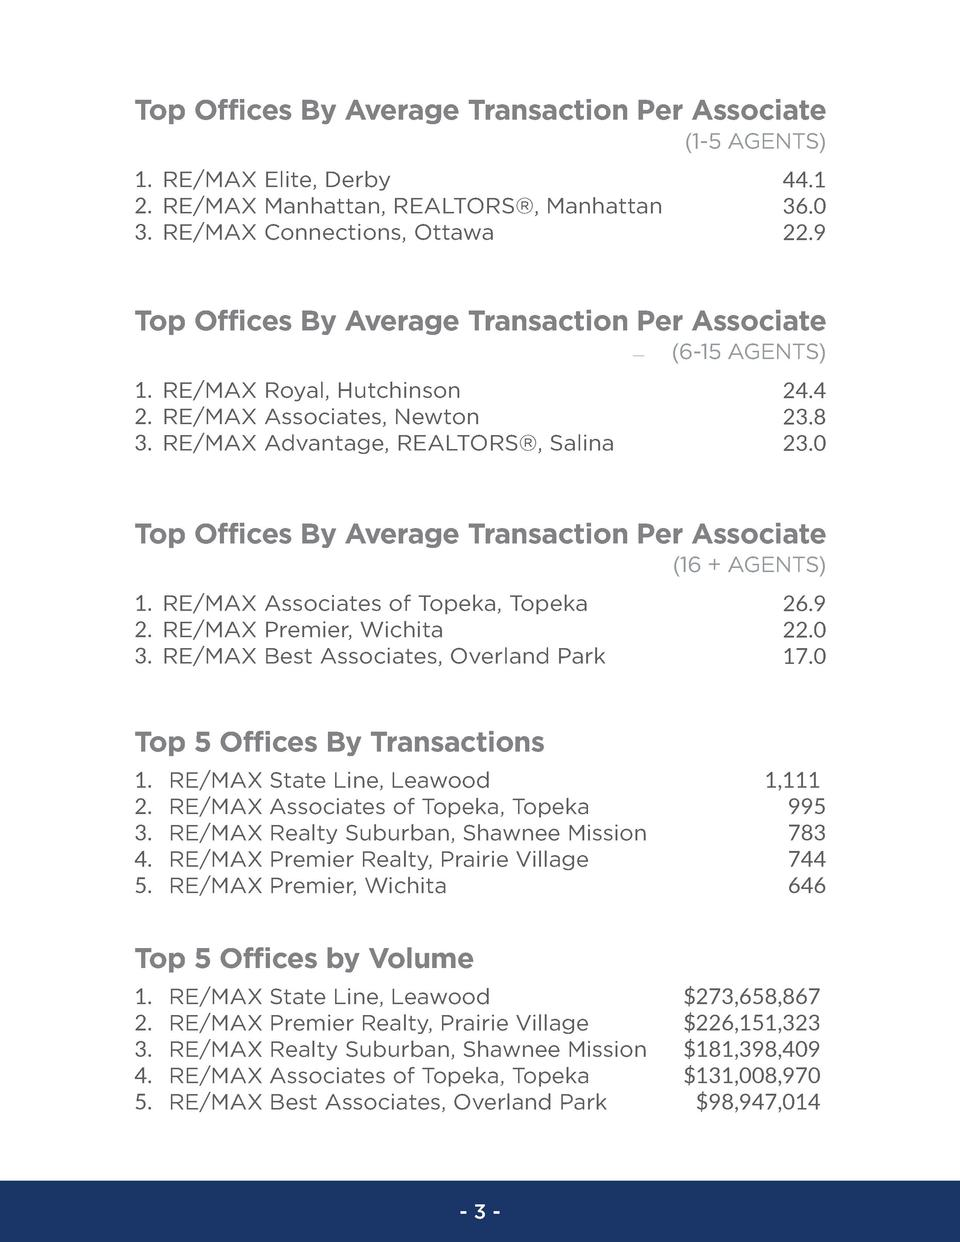 Top Offices By Average Transaction Per Associate  1-5 AGENTS  1. RE MAX Elite, Derby 2. RE MAX Manhattan, REALTORS  , Manh...